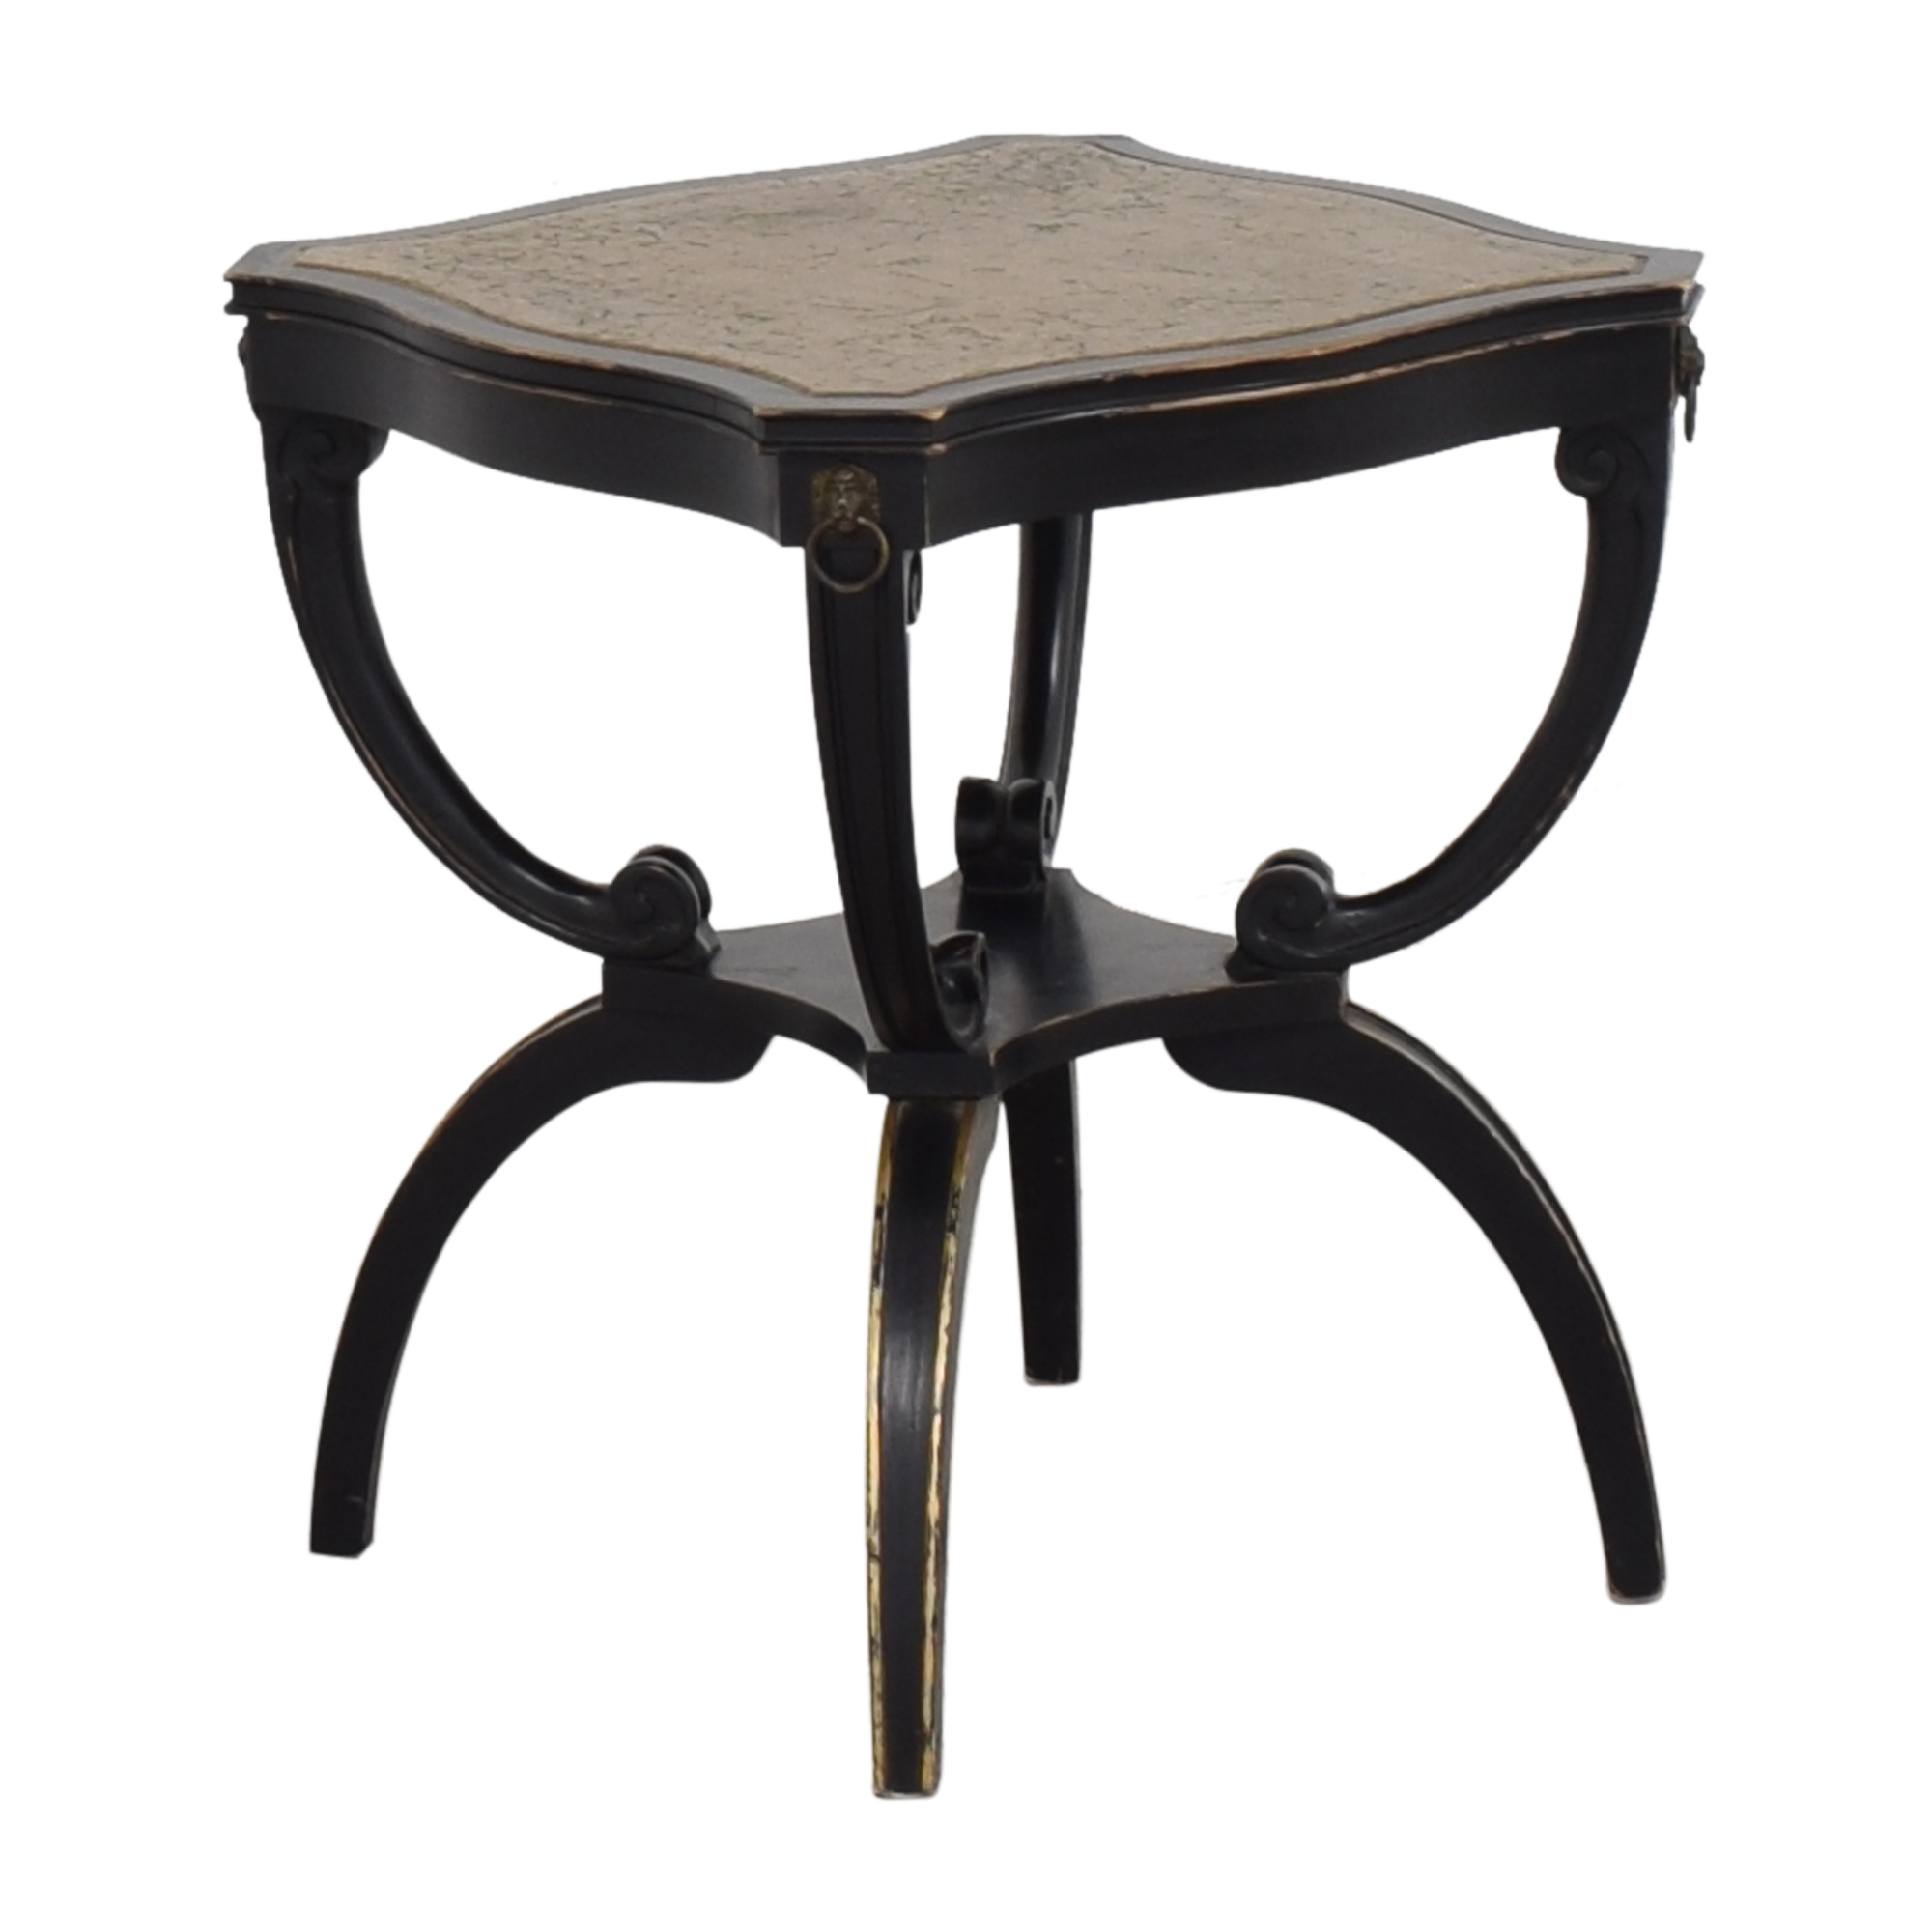 Adams Always Adams Always Decorative End Table End Tables